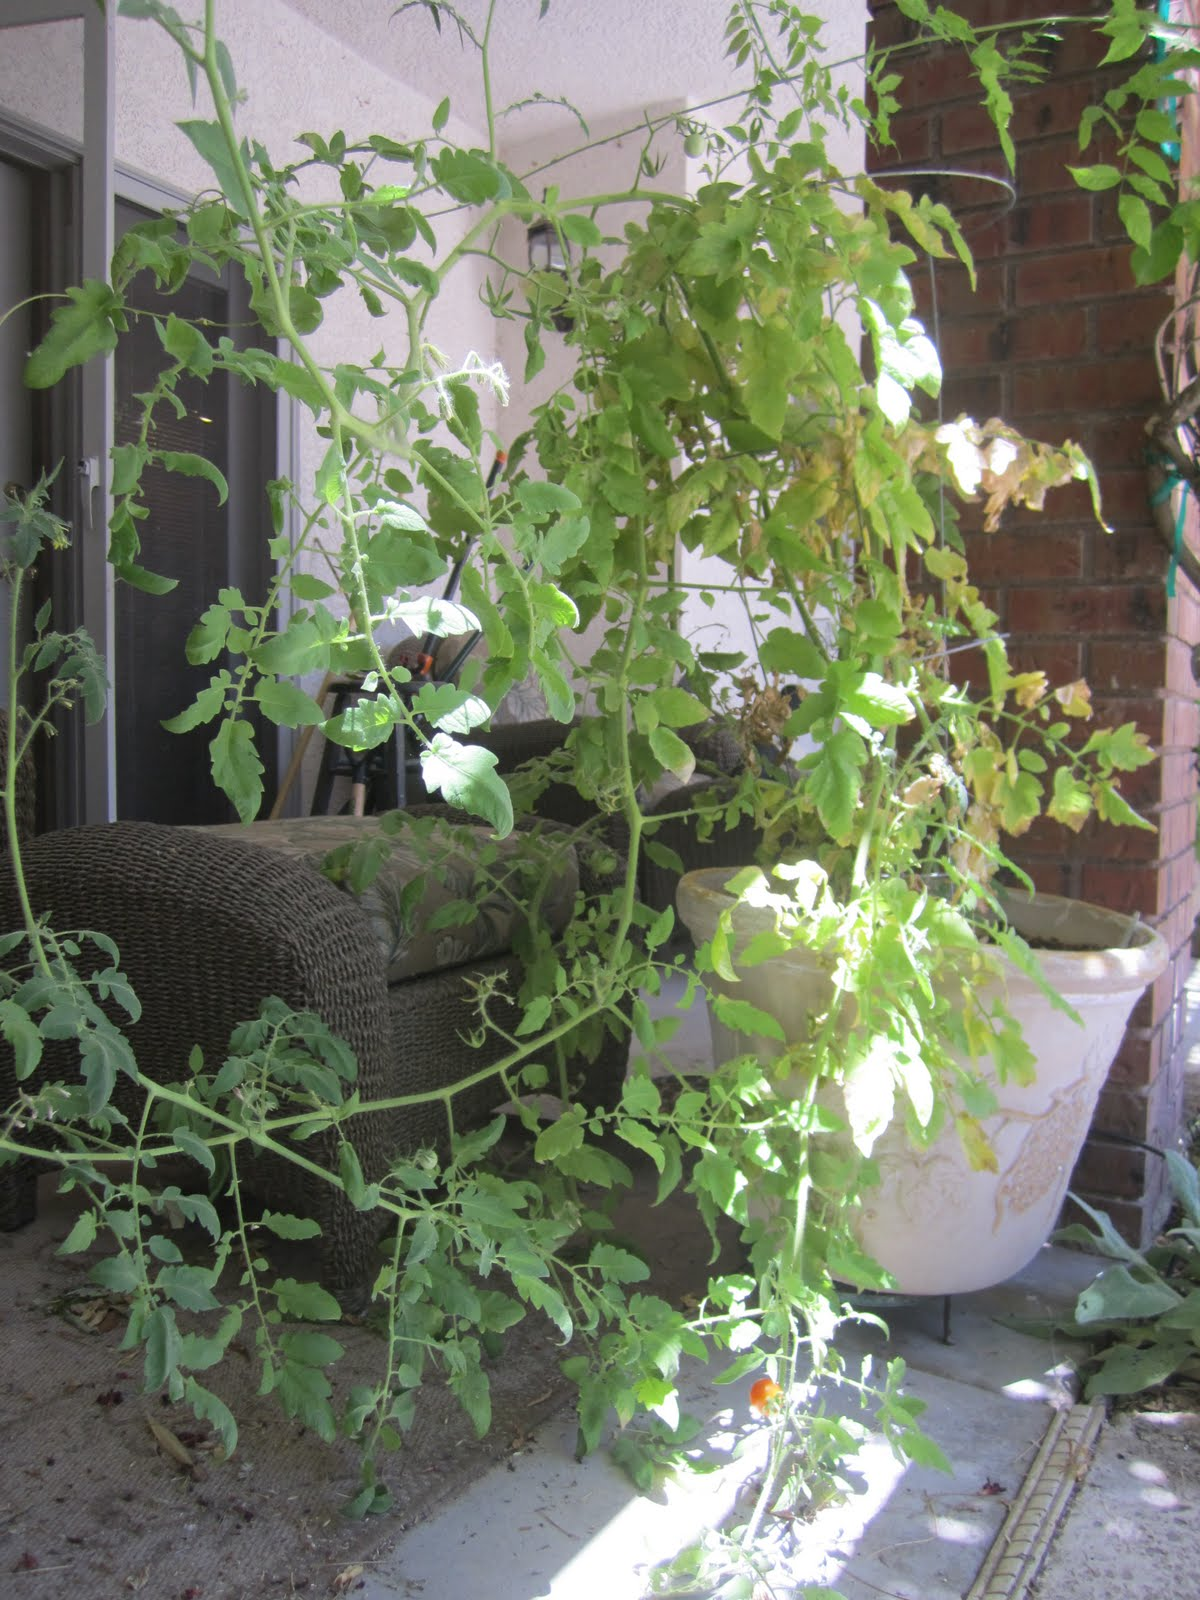 wendys hat how to grow tomatoes garden recipe. Black Bedroom Furniture Sets. Home Design Ideas